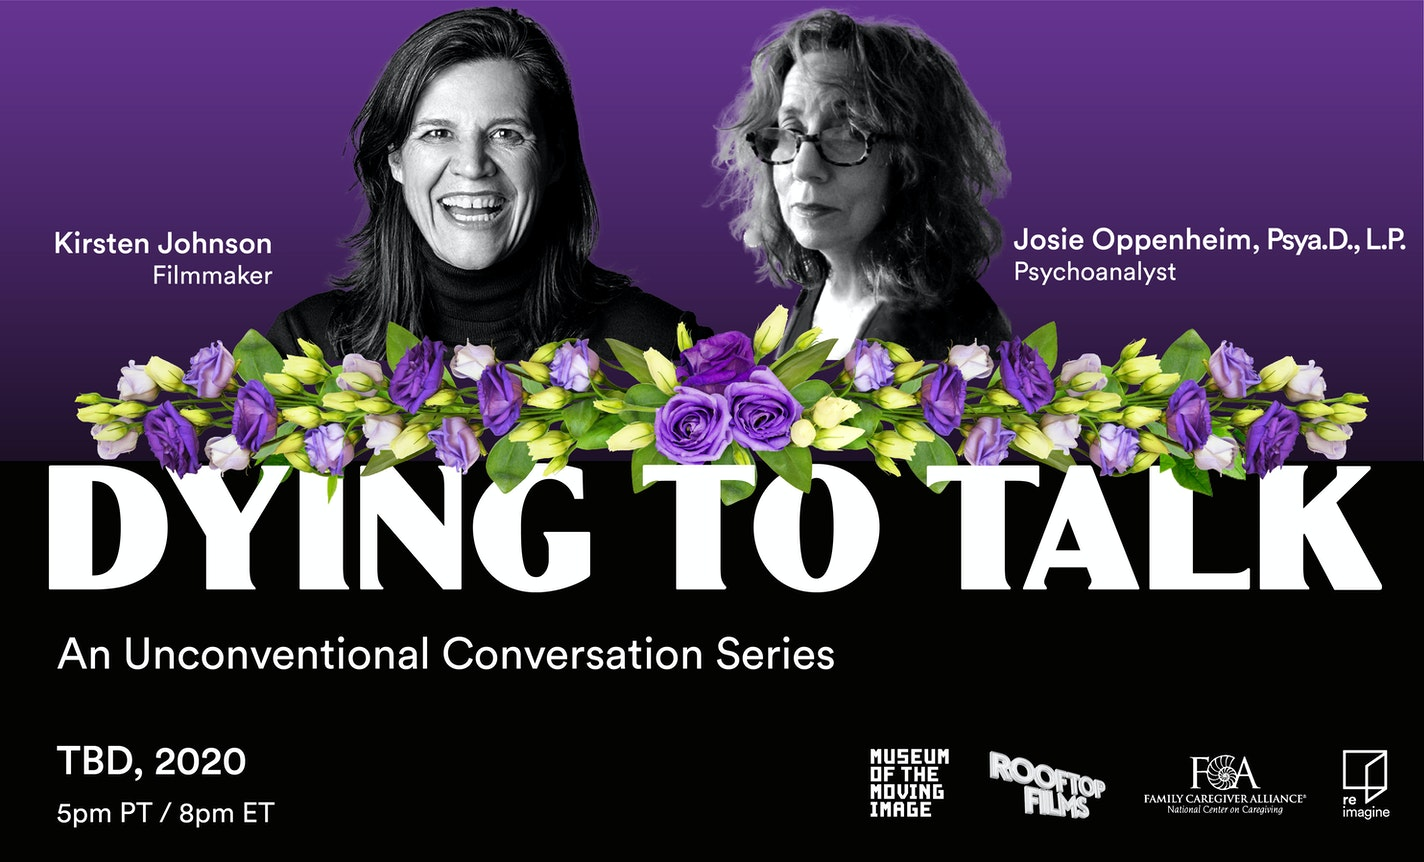 Dying to Talk, Session 2: Josie Oppenheim & Kirsten Johnson